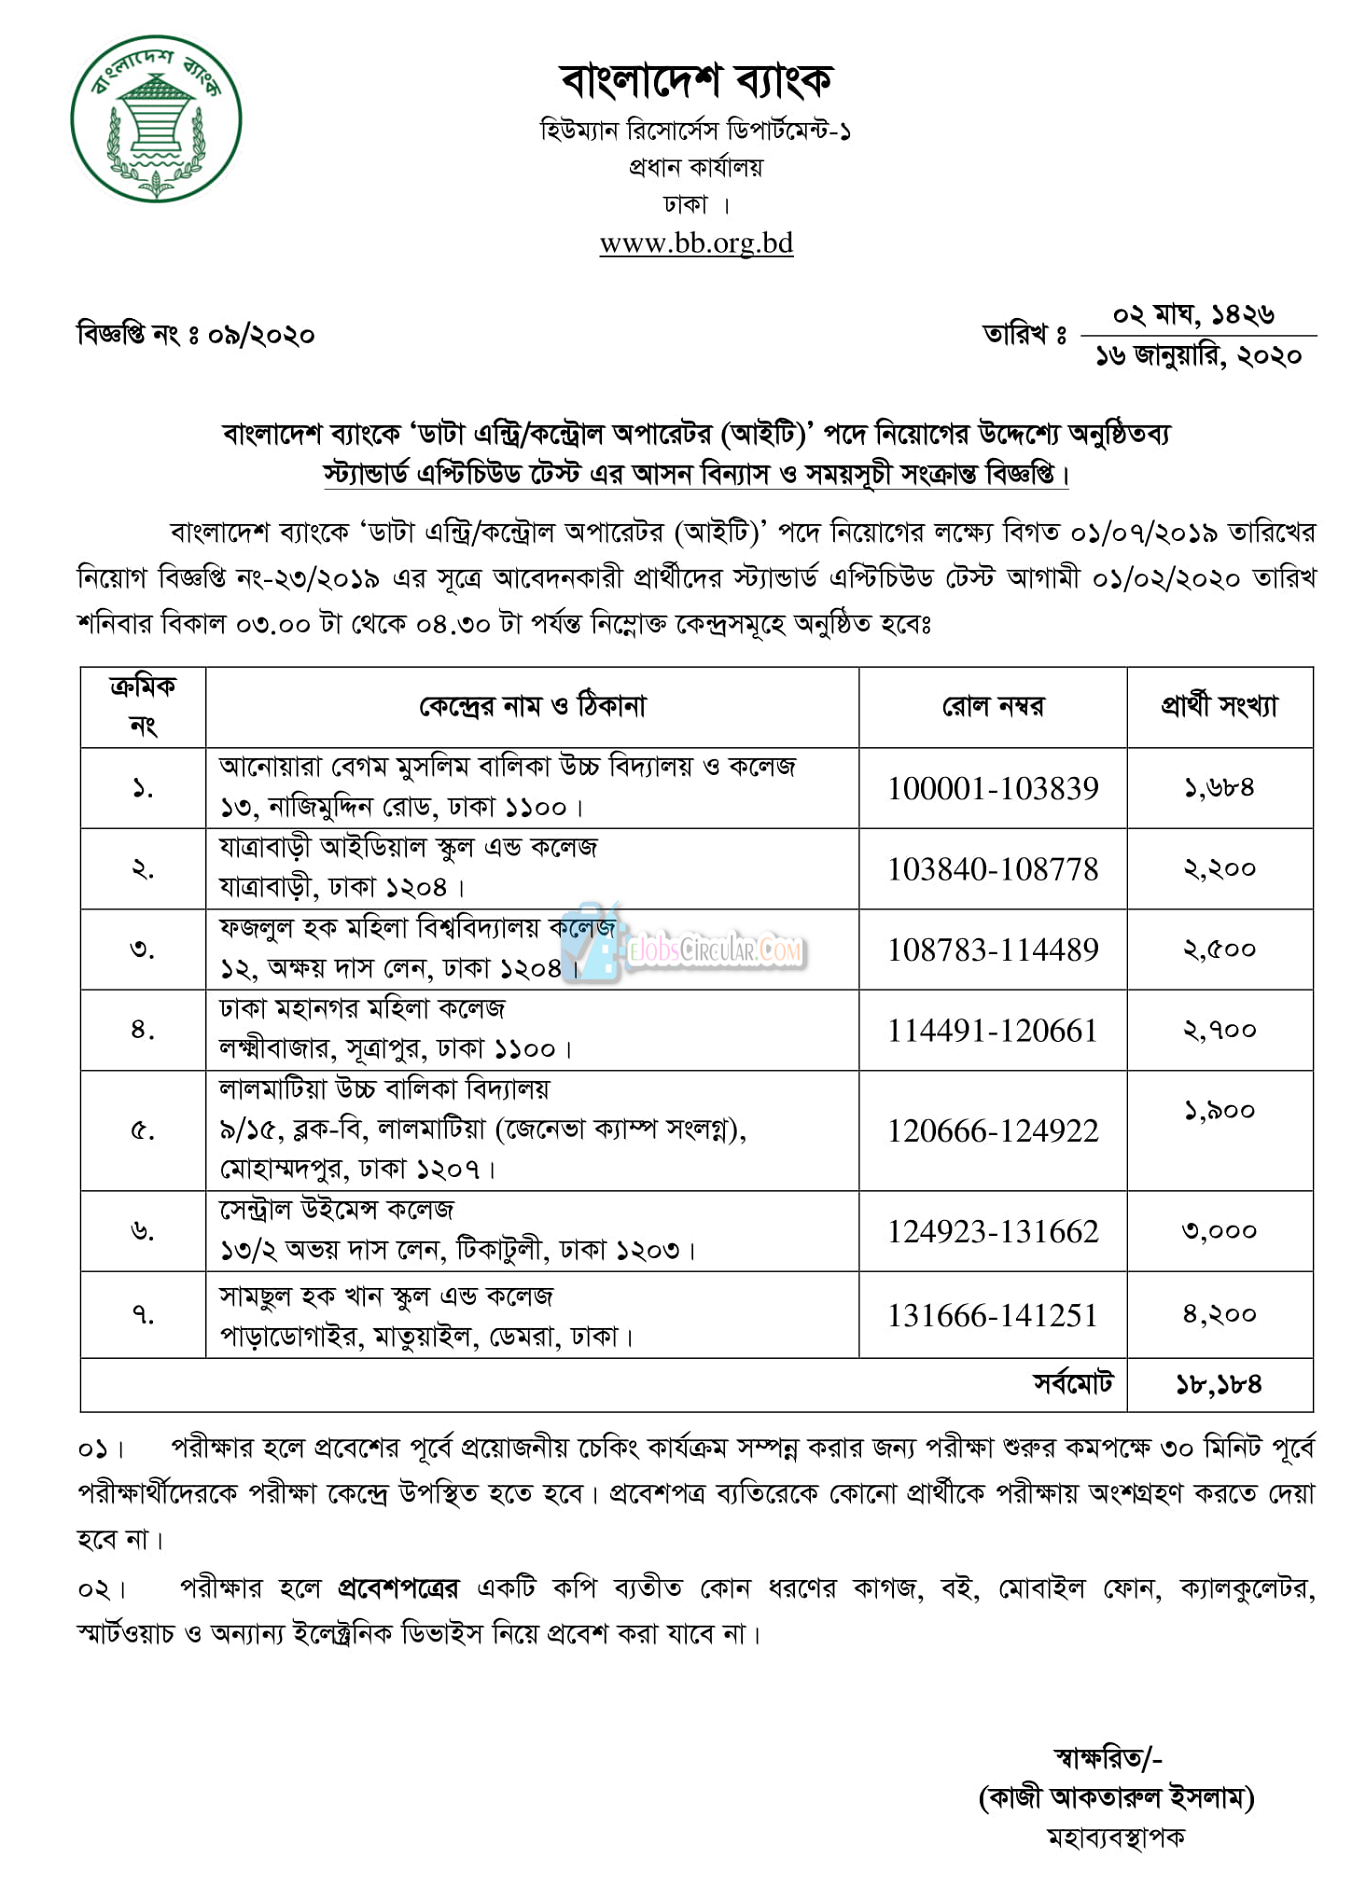 Bangladesh Bank Job Exam Schedule Notice 2020 | BD Jobs Careers